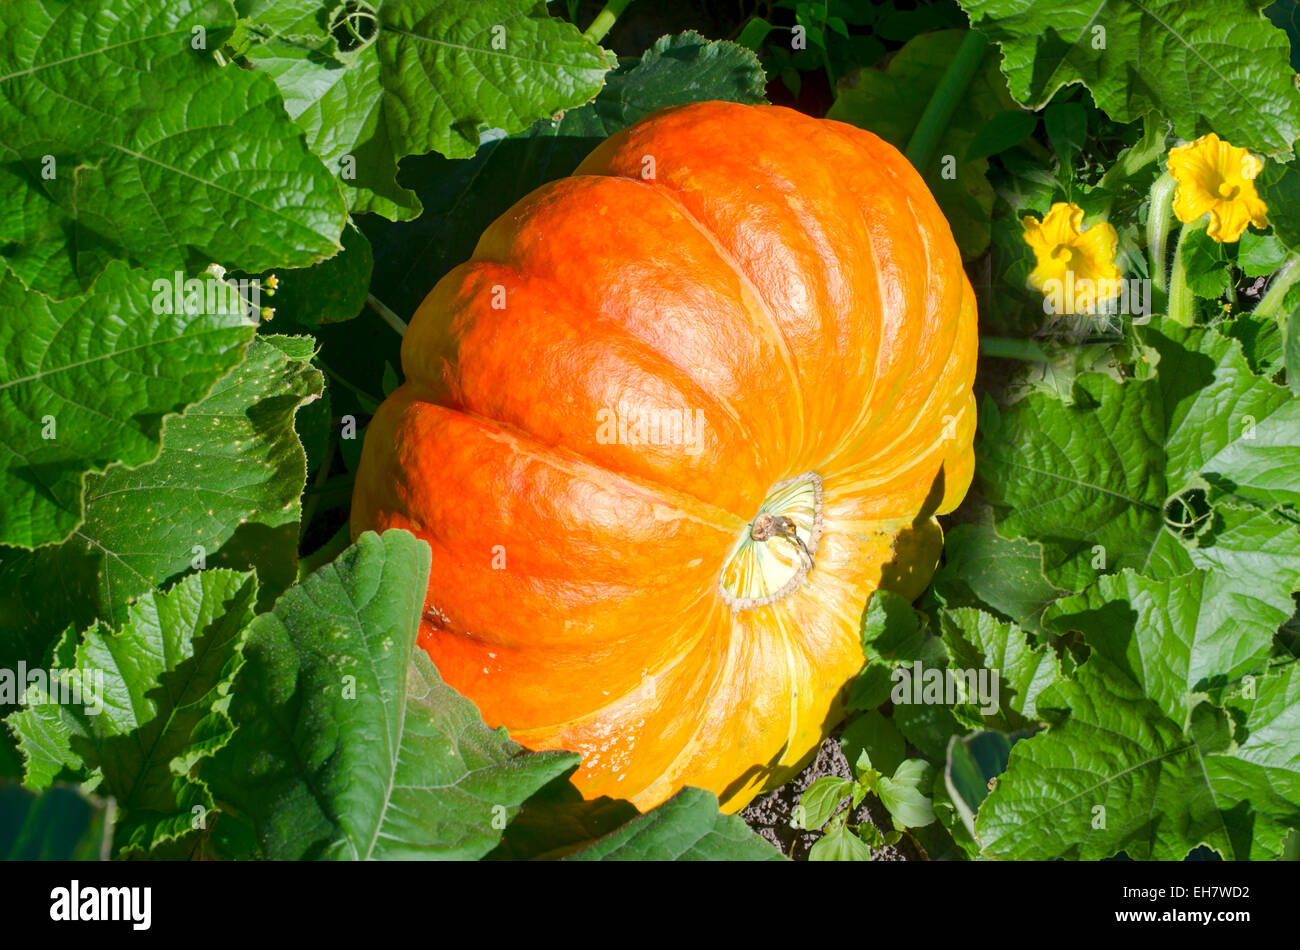 Big orange pumpkins growing in the garden - Stock Image